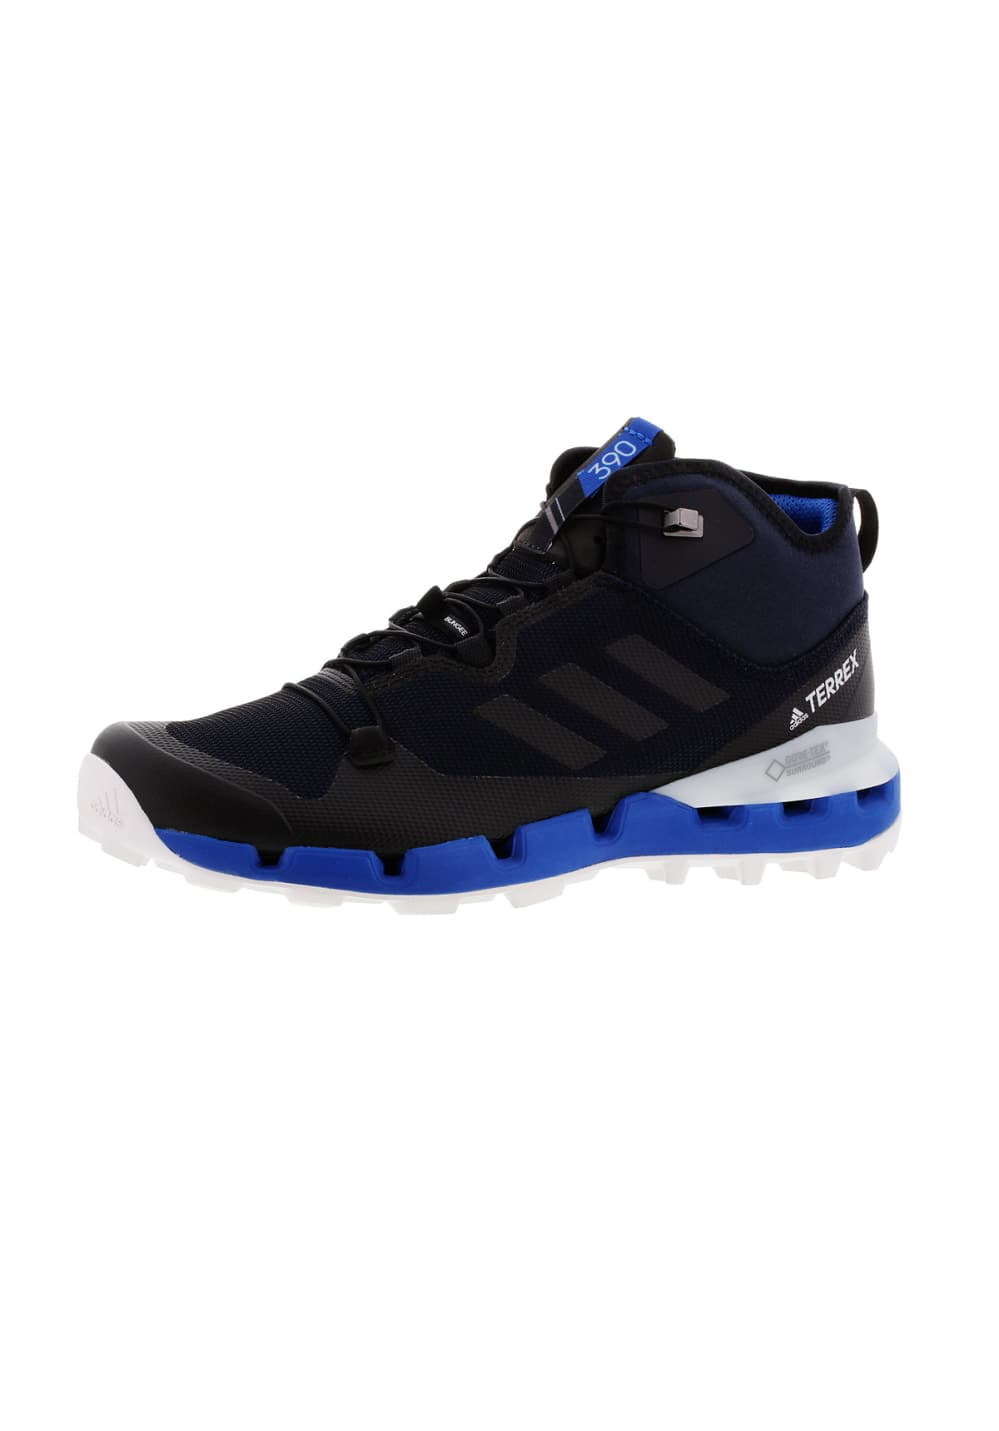 e502176be0bd Next. -60%. adidas TERREX. Terrex Fast Mid Gtx-surround - Outdoor shoes for  Men